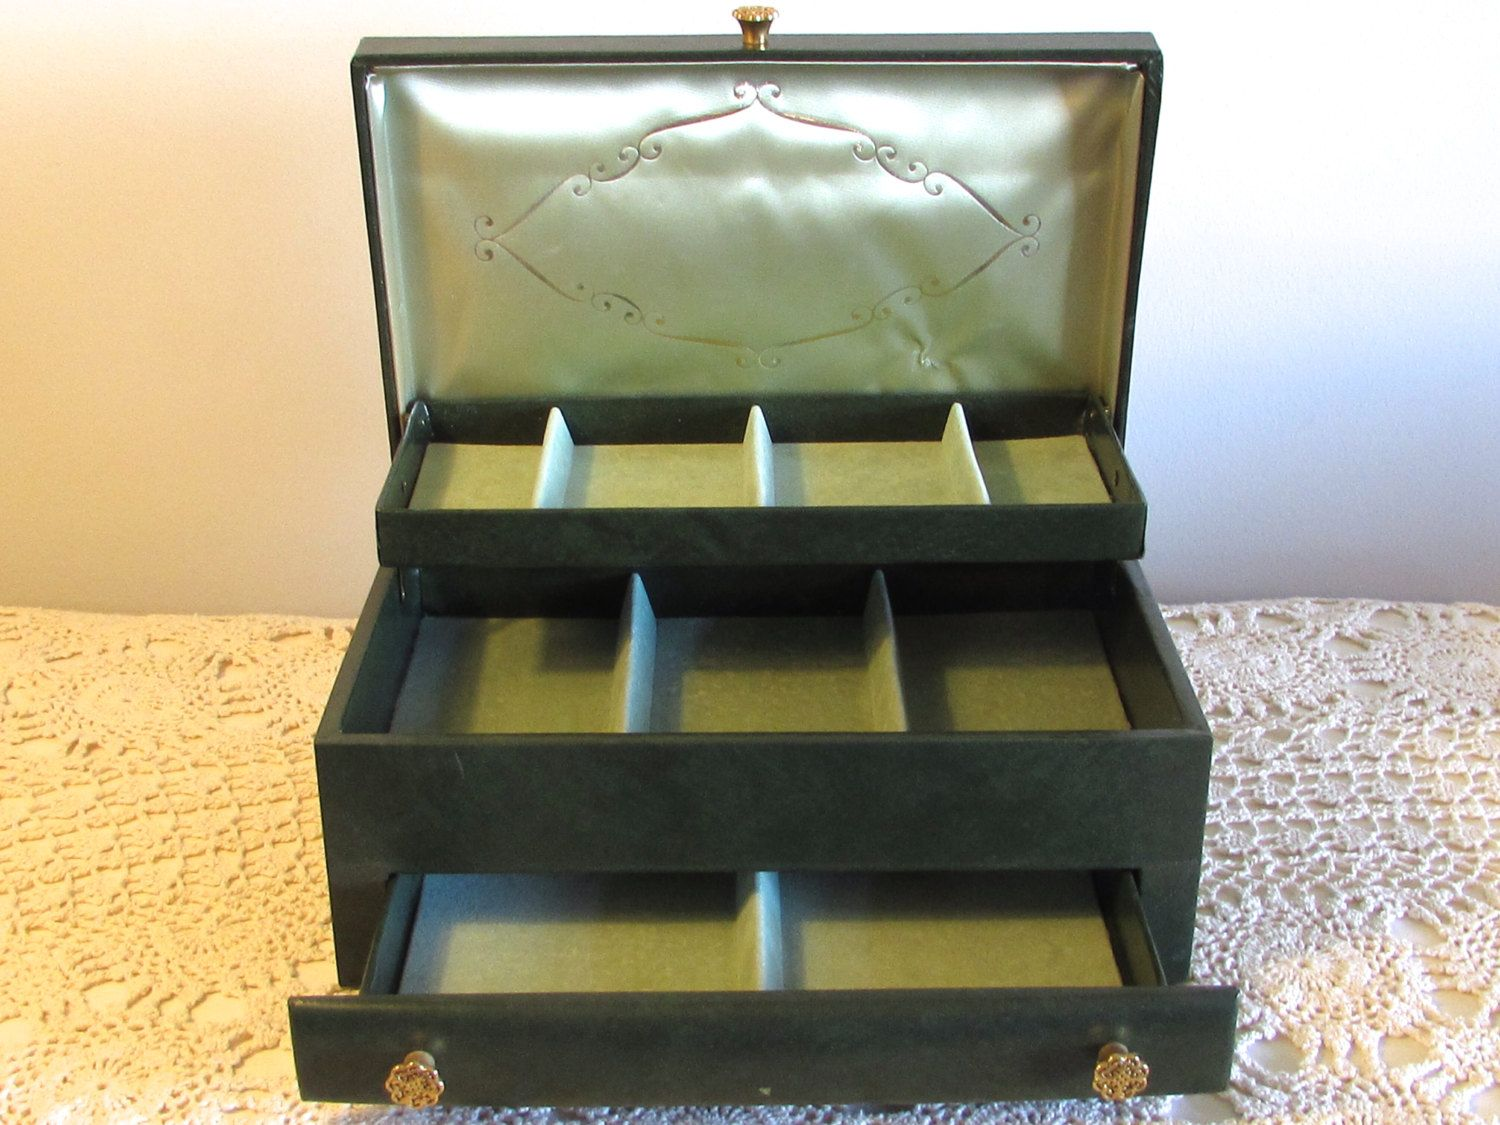 Green Simulated Leather Jewelry Box 3 Tier Buxton Jewelry Storage